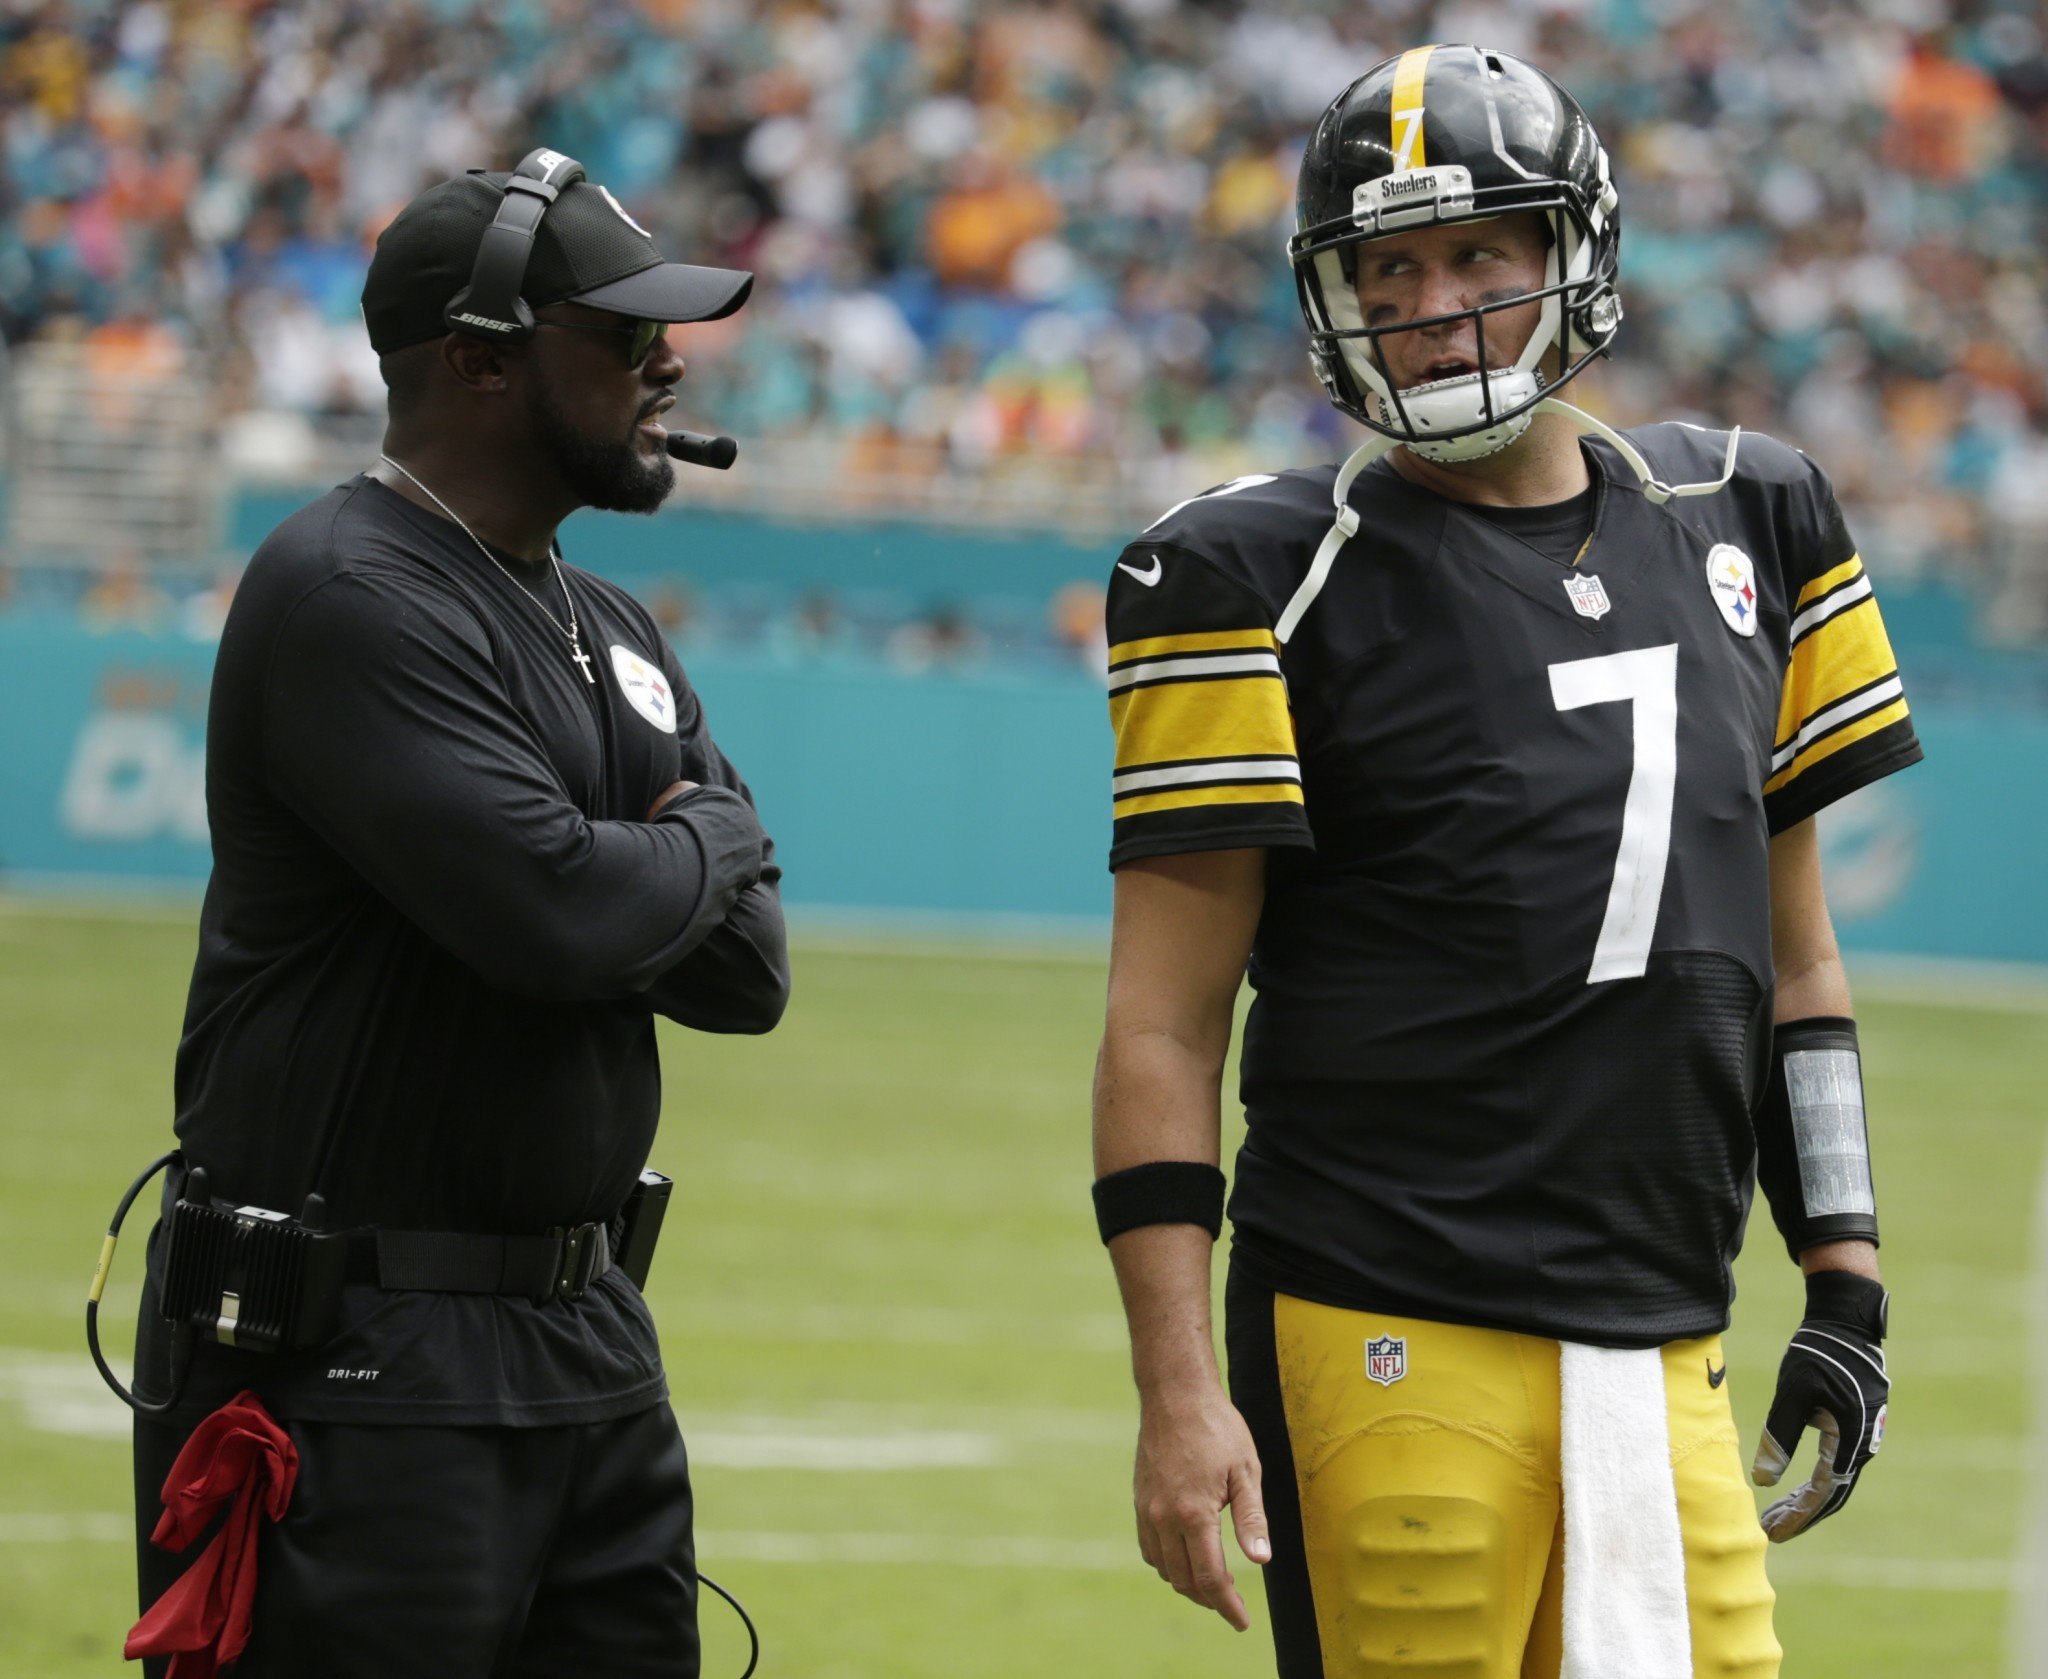 Ben Roethlisberger made sure to defend the Pittsburgh Steelers when asked about Julian Edelman's comments. (AP)